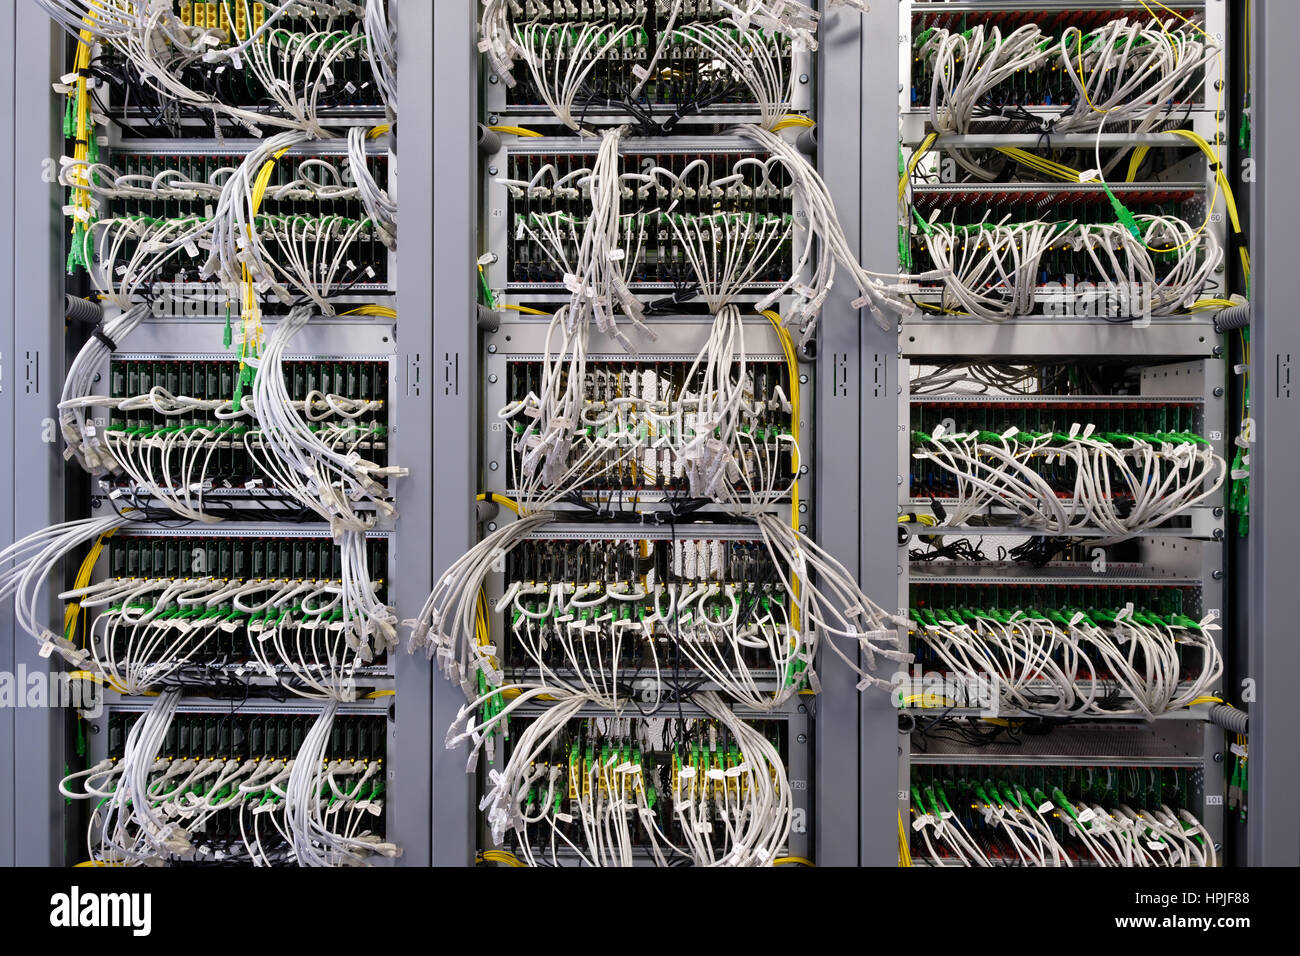 hight resolution of detail of cable management on a data centre server room